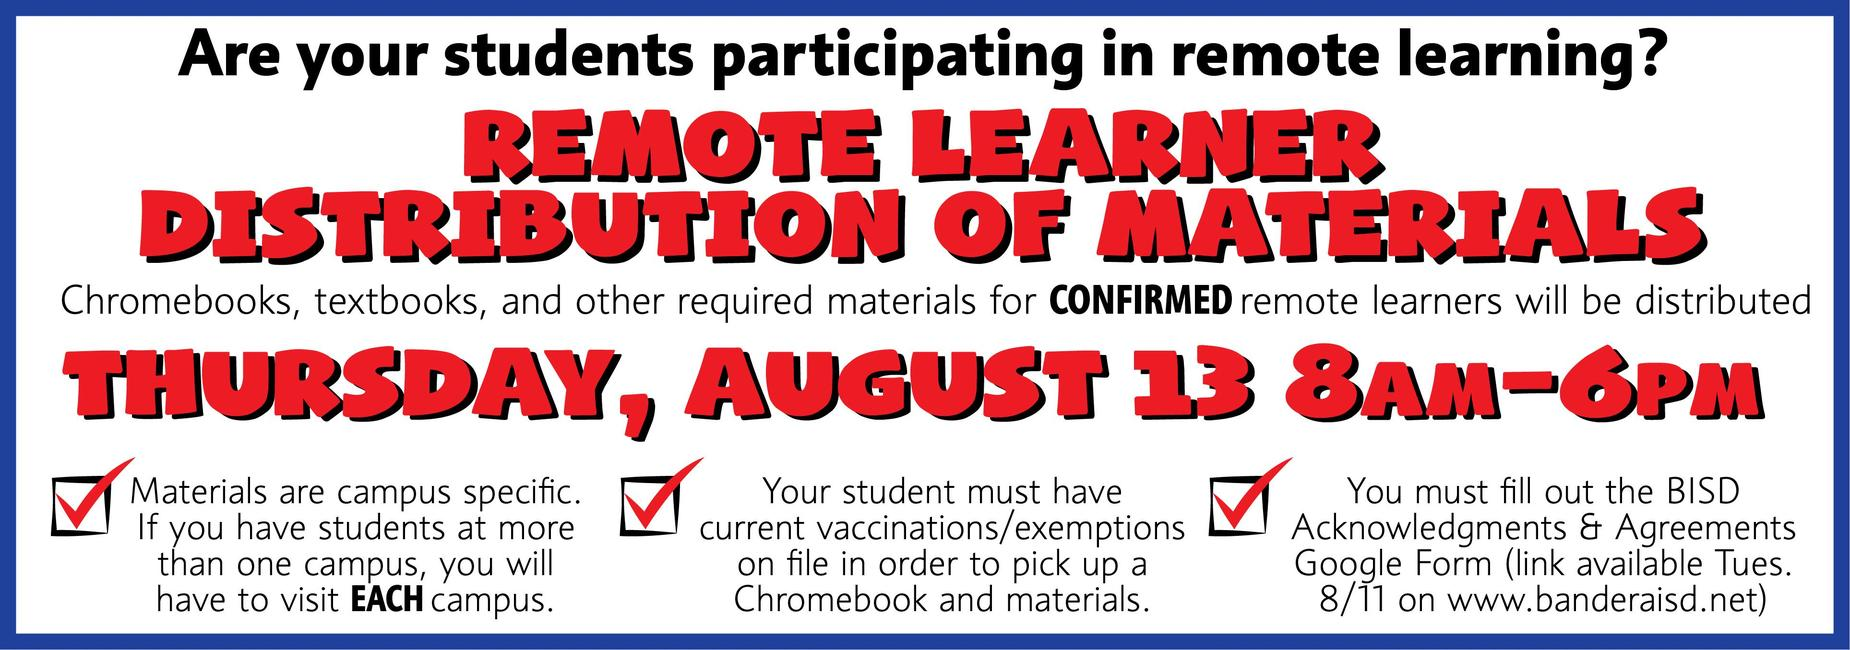 Remote Learner Distribution of Materials is Thursday, August 13th from 8am to 6pm district-wide.